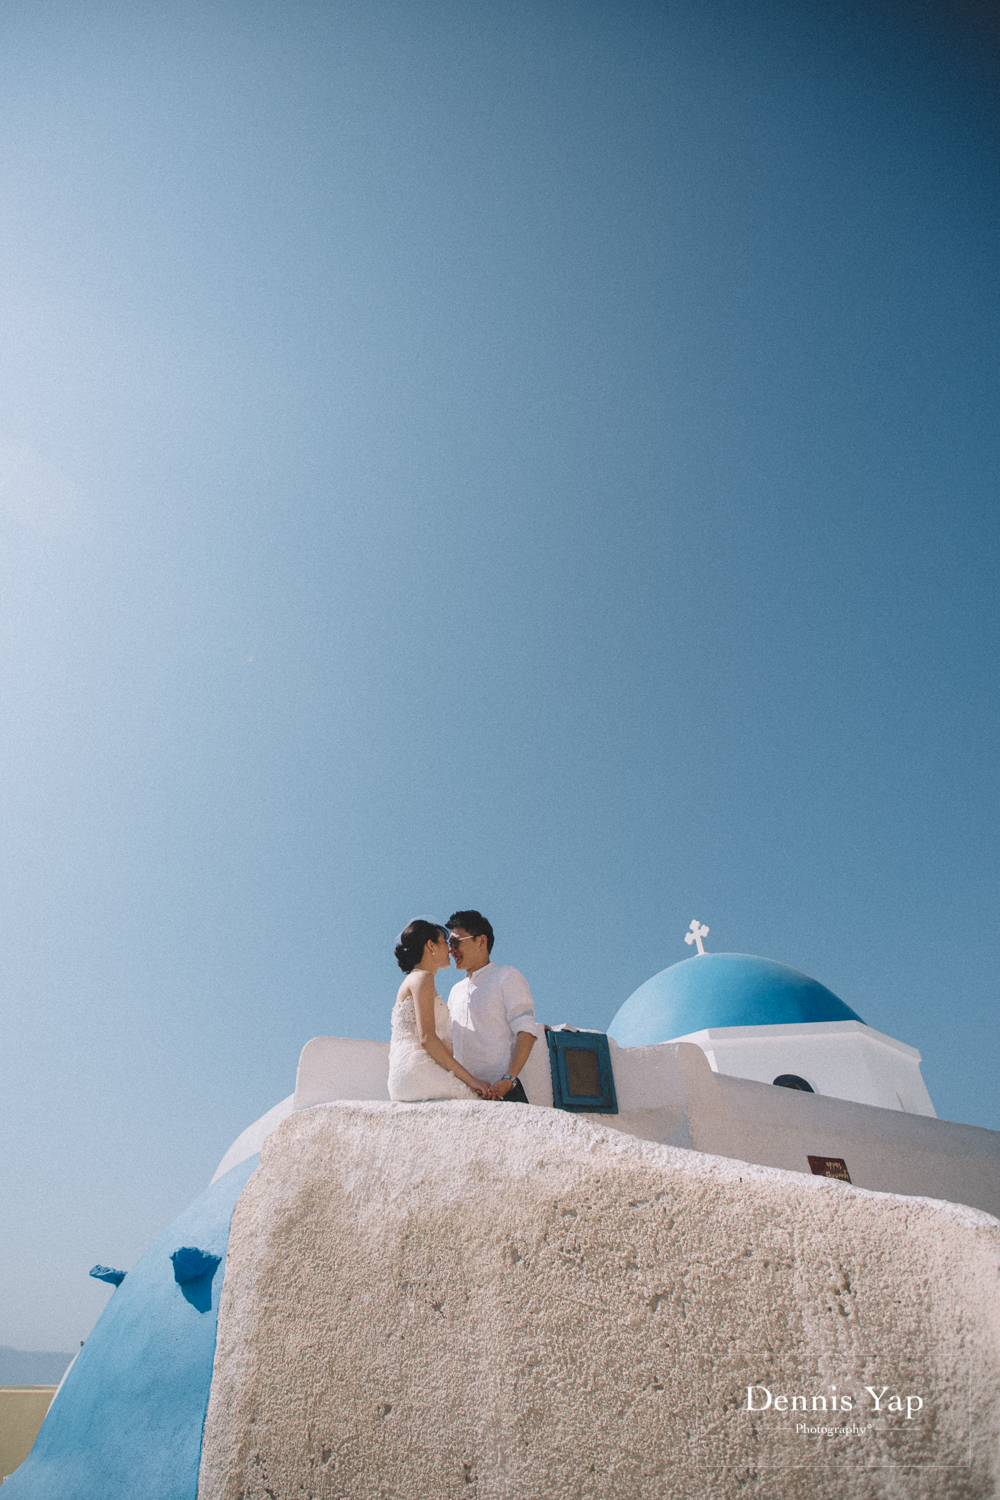 kevin miki pre wedding london santorini friendship dennis yap photography malaysia top wedding photographer greece blue kevin tan photography-13.jpg